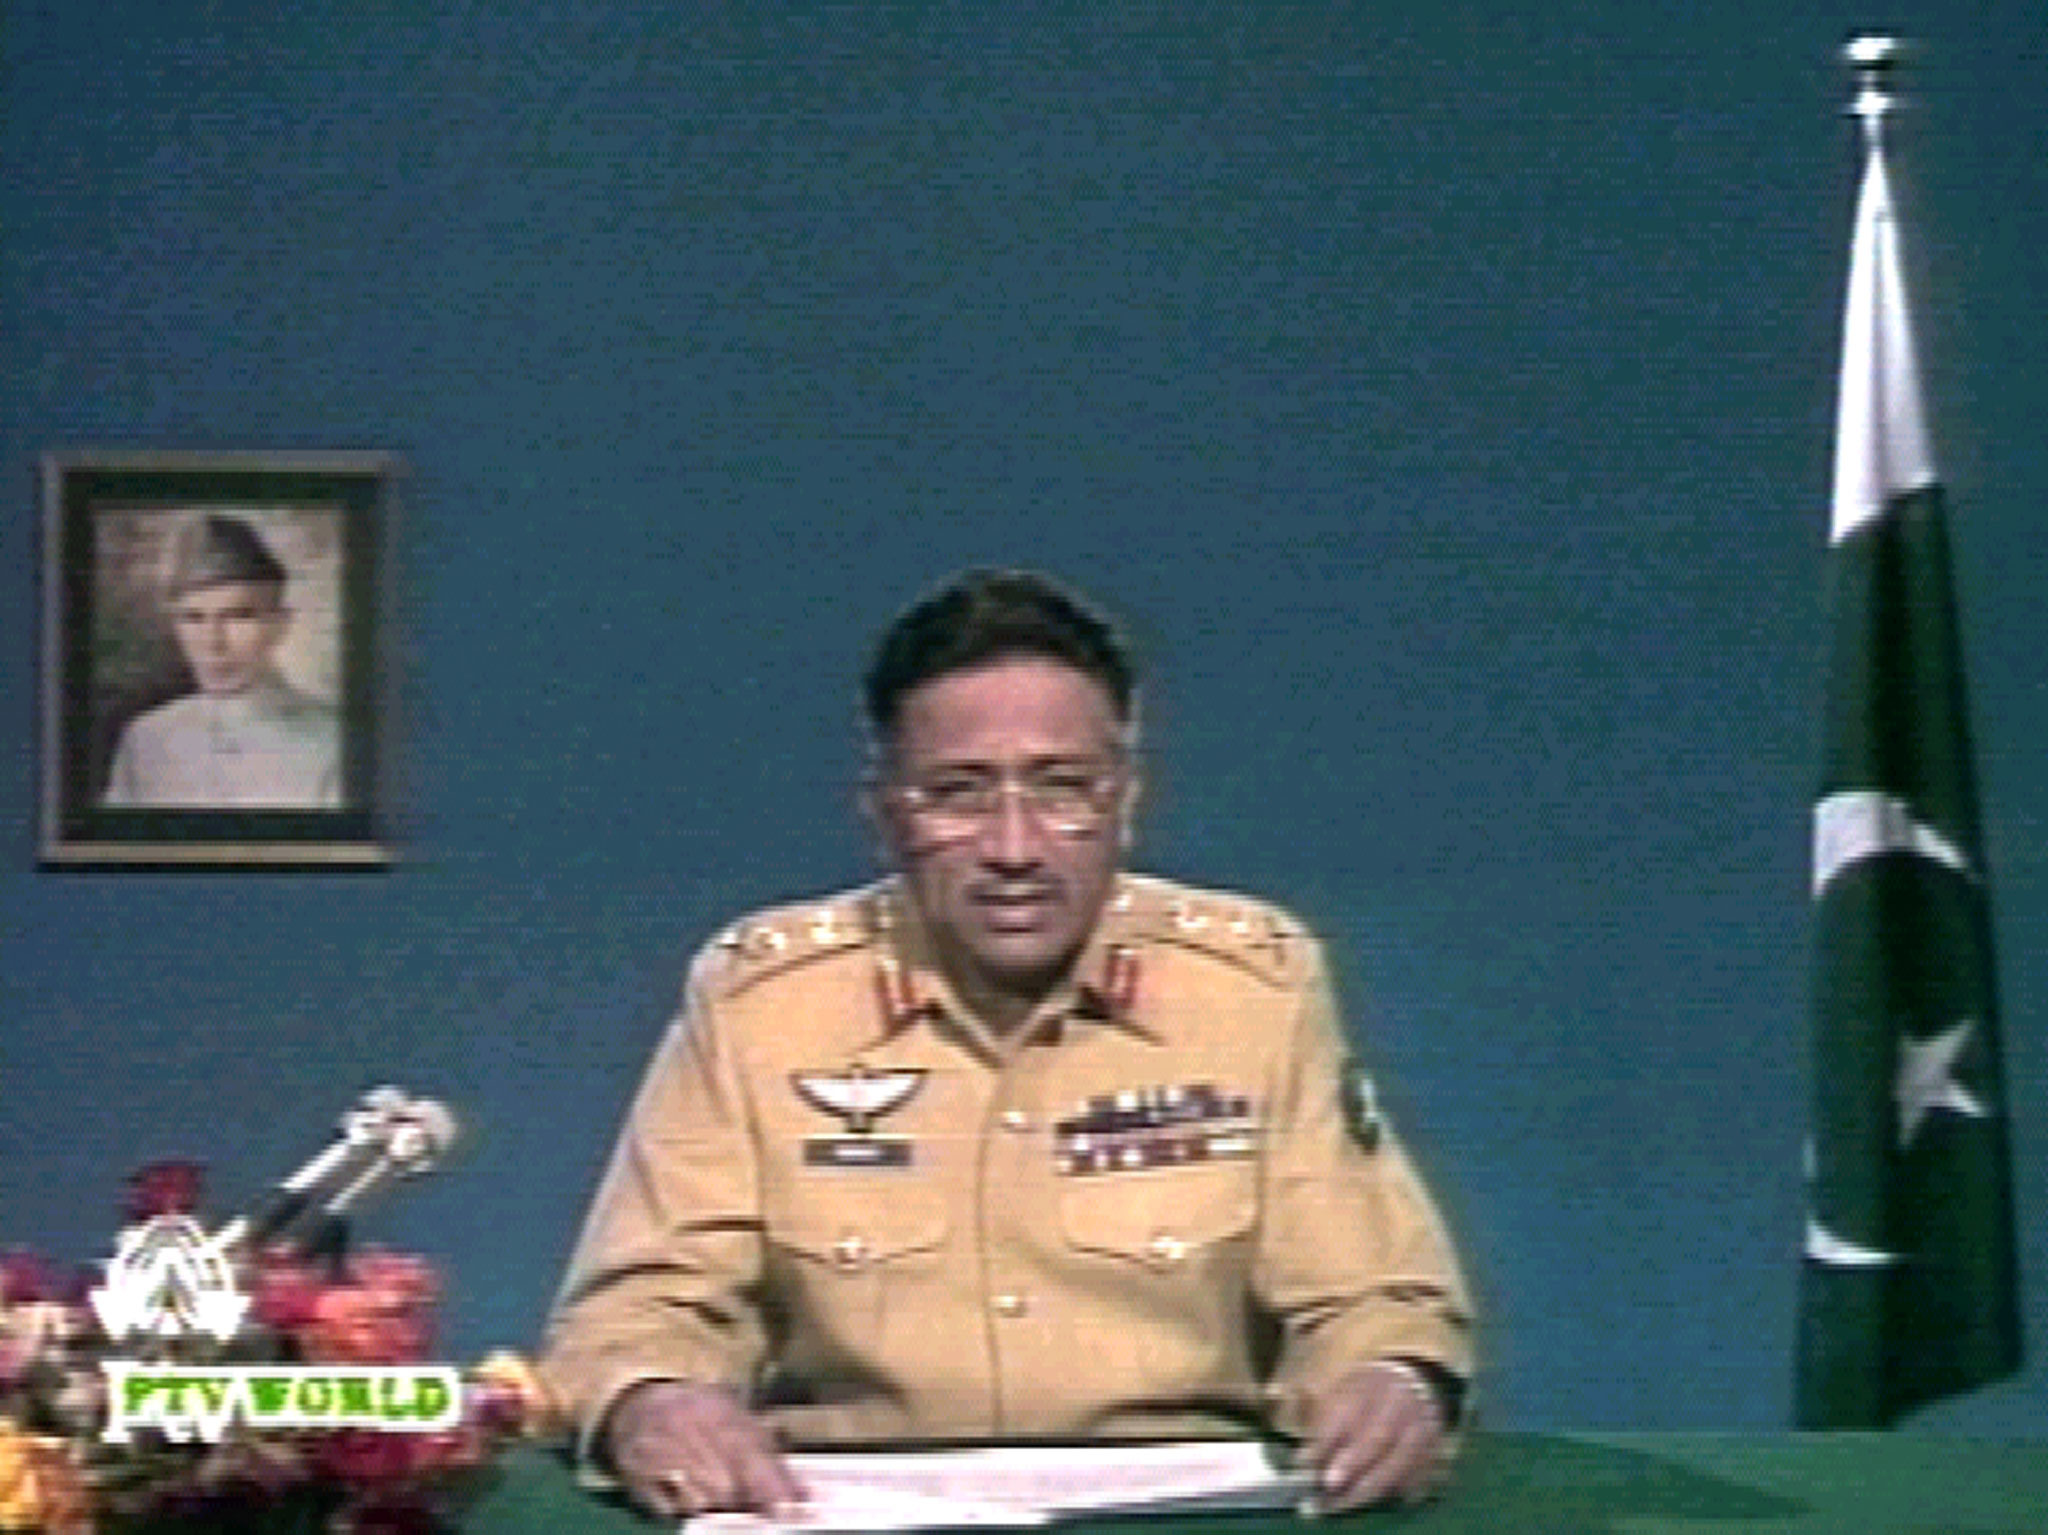 General Pervez Musharraf addresses the nation on state television on October 17, 1999, announcing the setting up of the National Security Council (NSC), to guide cabinet ministers in running the affairs of the country. He said that army rule would last no longer than necessary but gave no clear timeframe. — Reuters